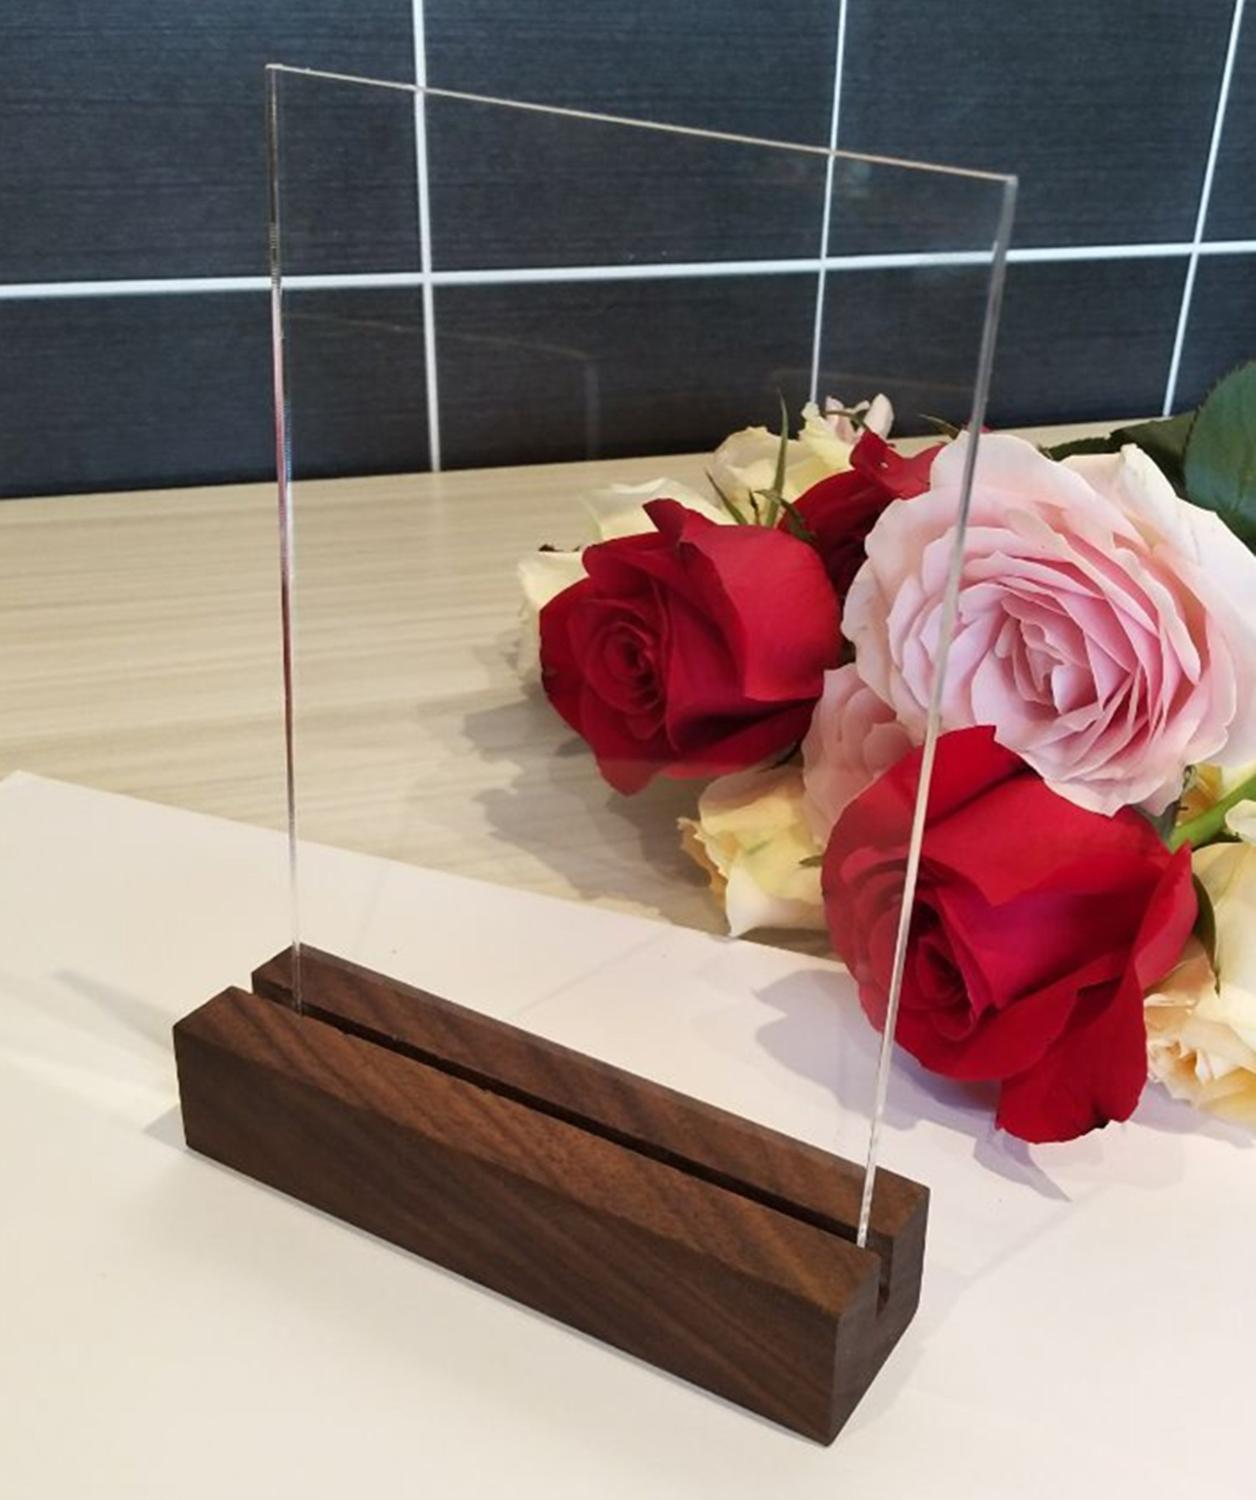 5SETS of Blank Acrylic Sign Sheets with Rustic Walnut Wood Stands,Acrylic Table Number with Wood Holder